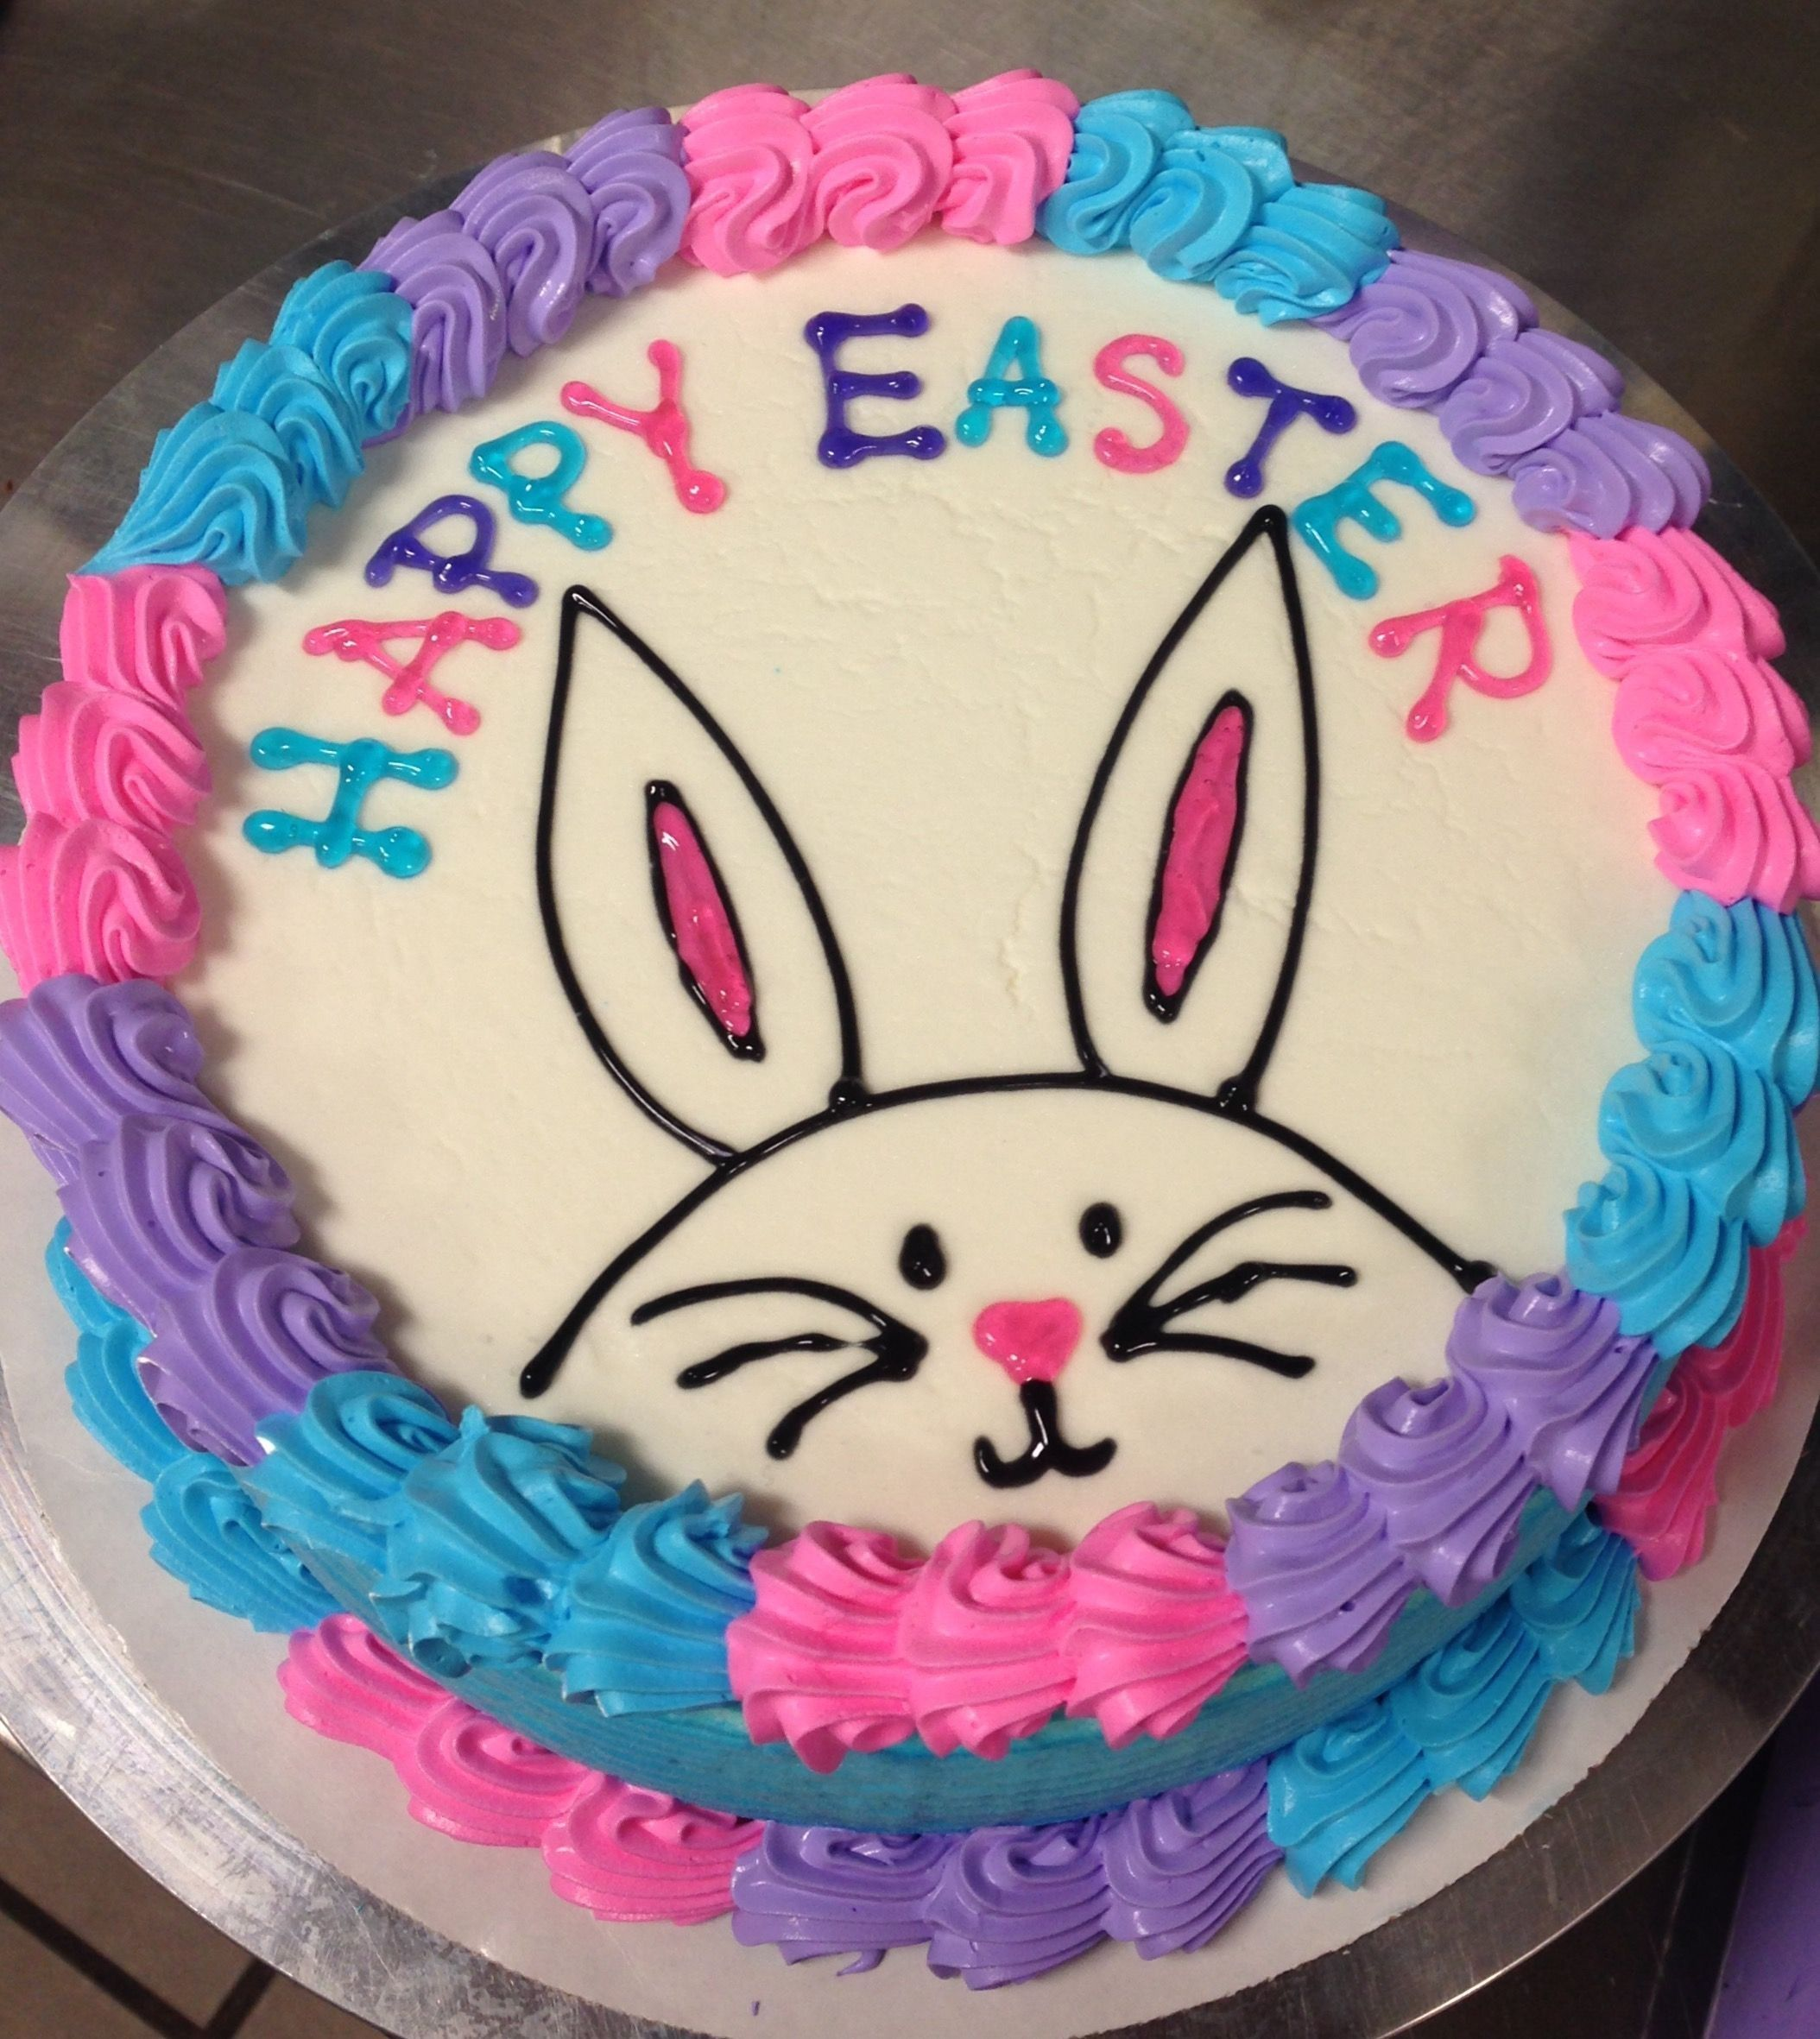 Pin by Linda Young on Cake decorating ideas... | Easter ...